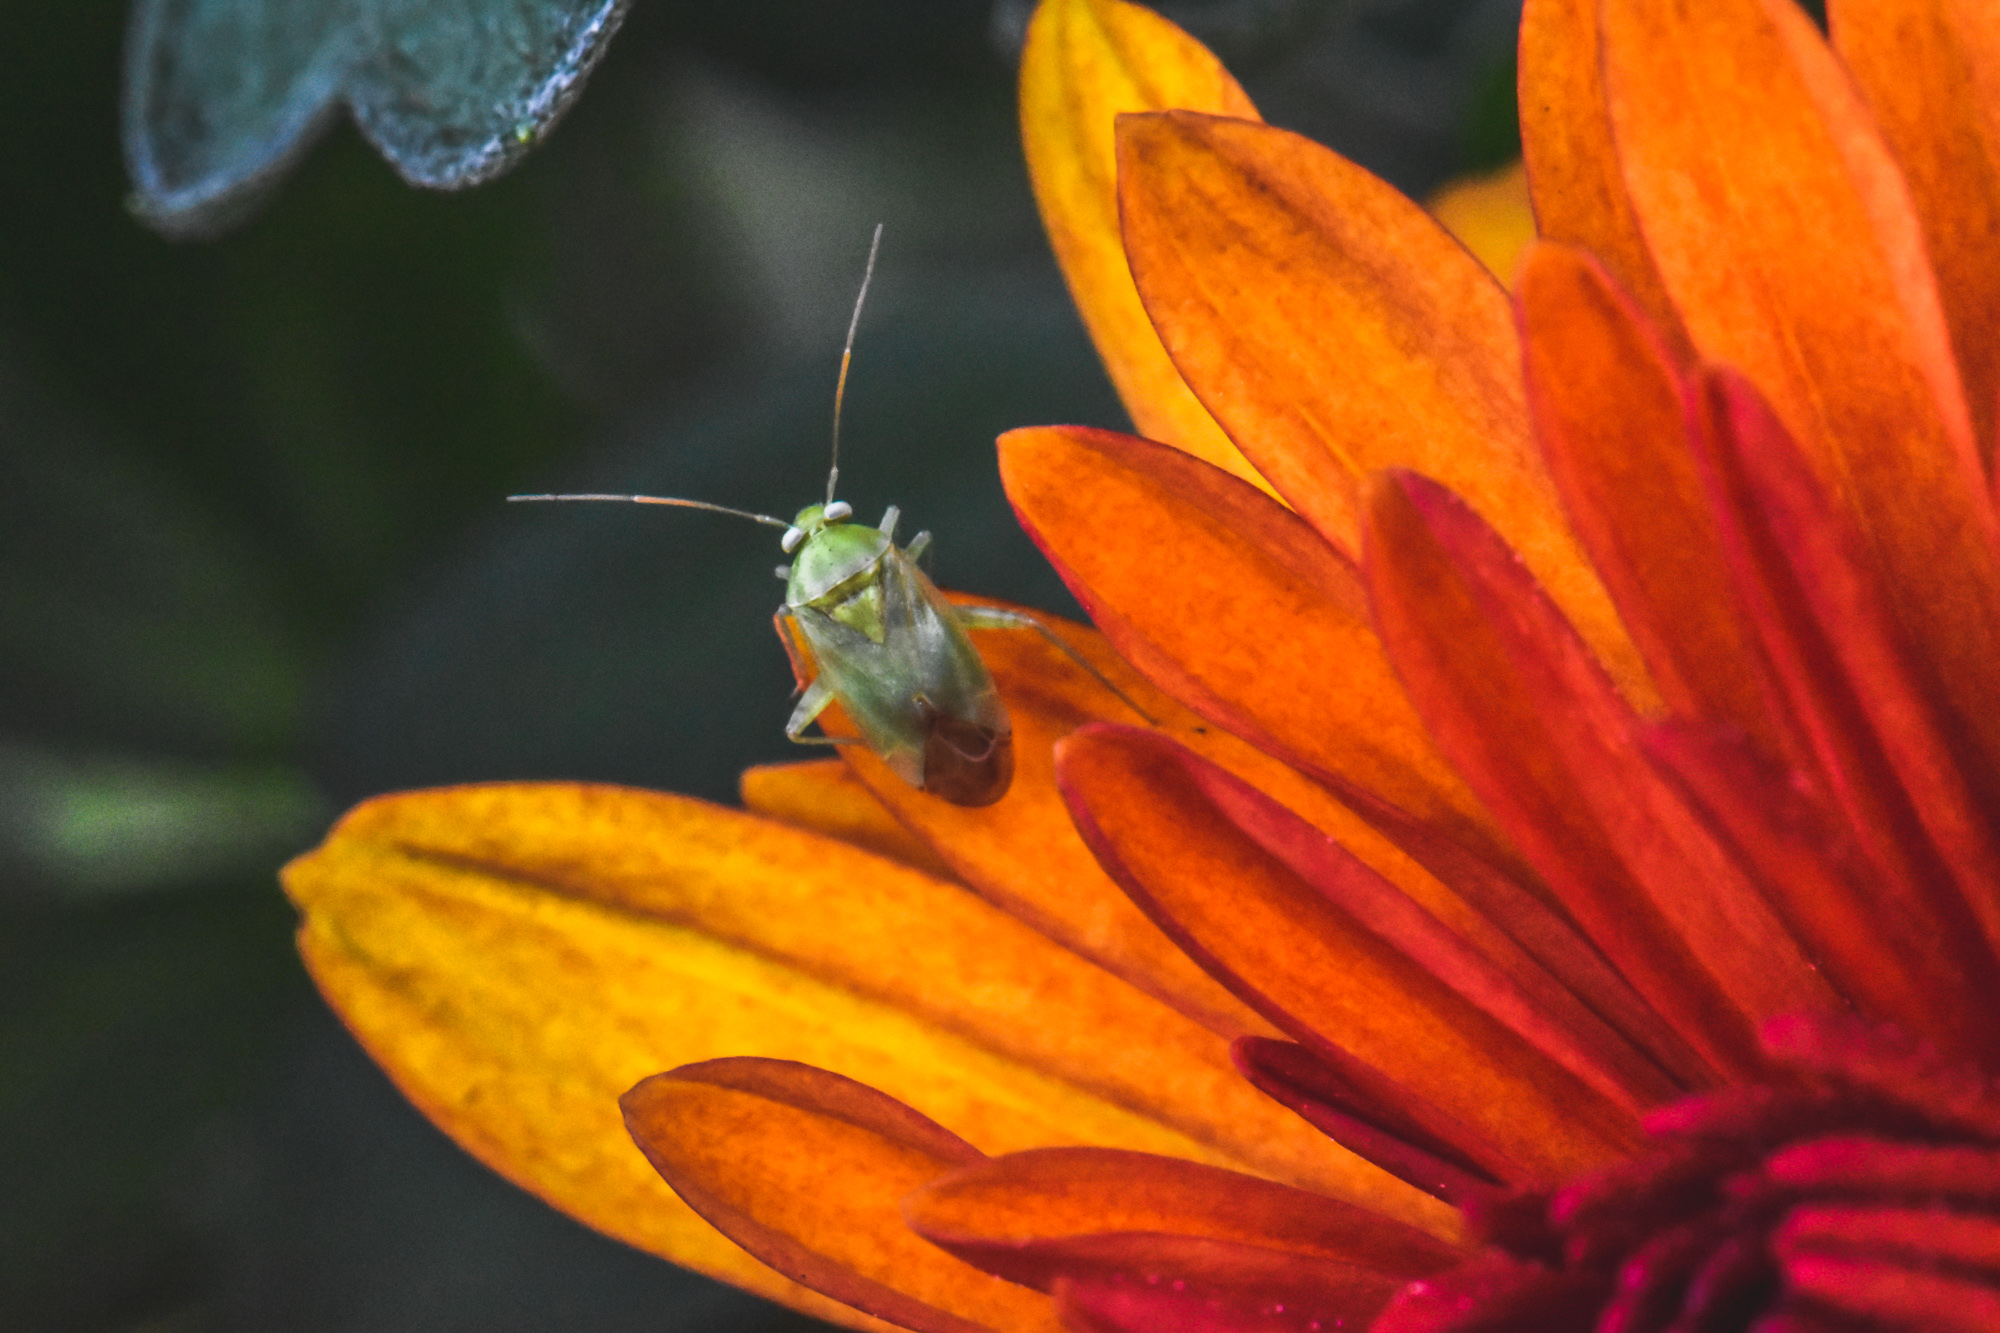 Green bug on an orange flower